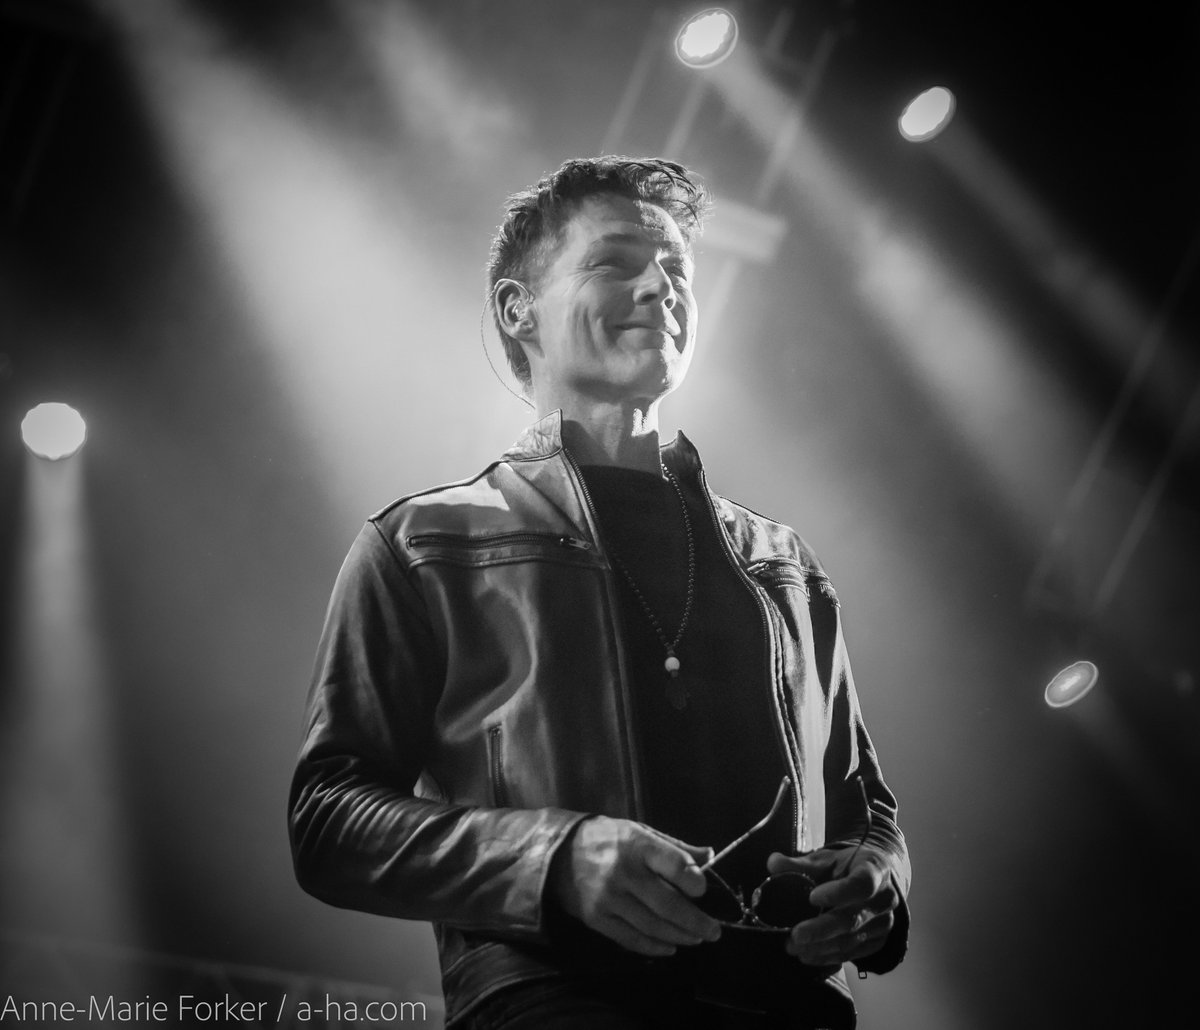 Tomorrow is Morten Harket's birthday! Post your greetings here and we'll pass them along :) Photo: Anne-Marie Forker https://t.co/VzZLb1Yt0u